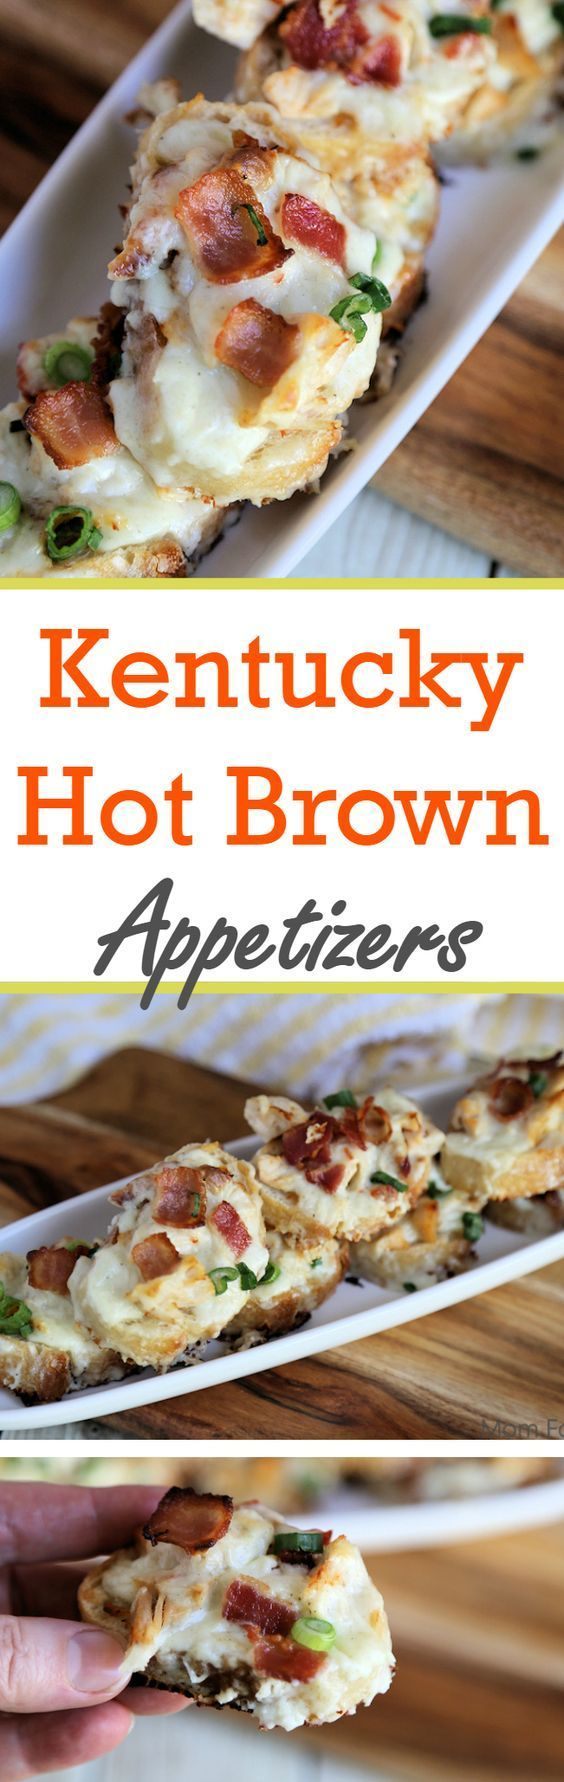 Kentucky Hot Brown Appetizers - A perfect party food for Derby Day